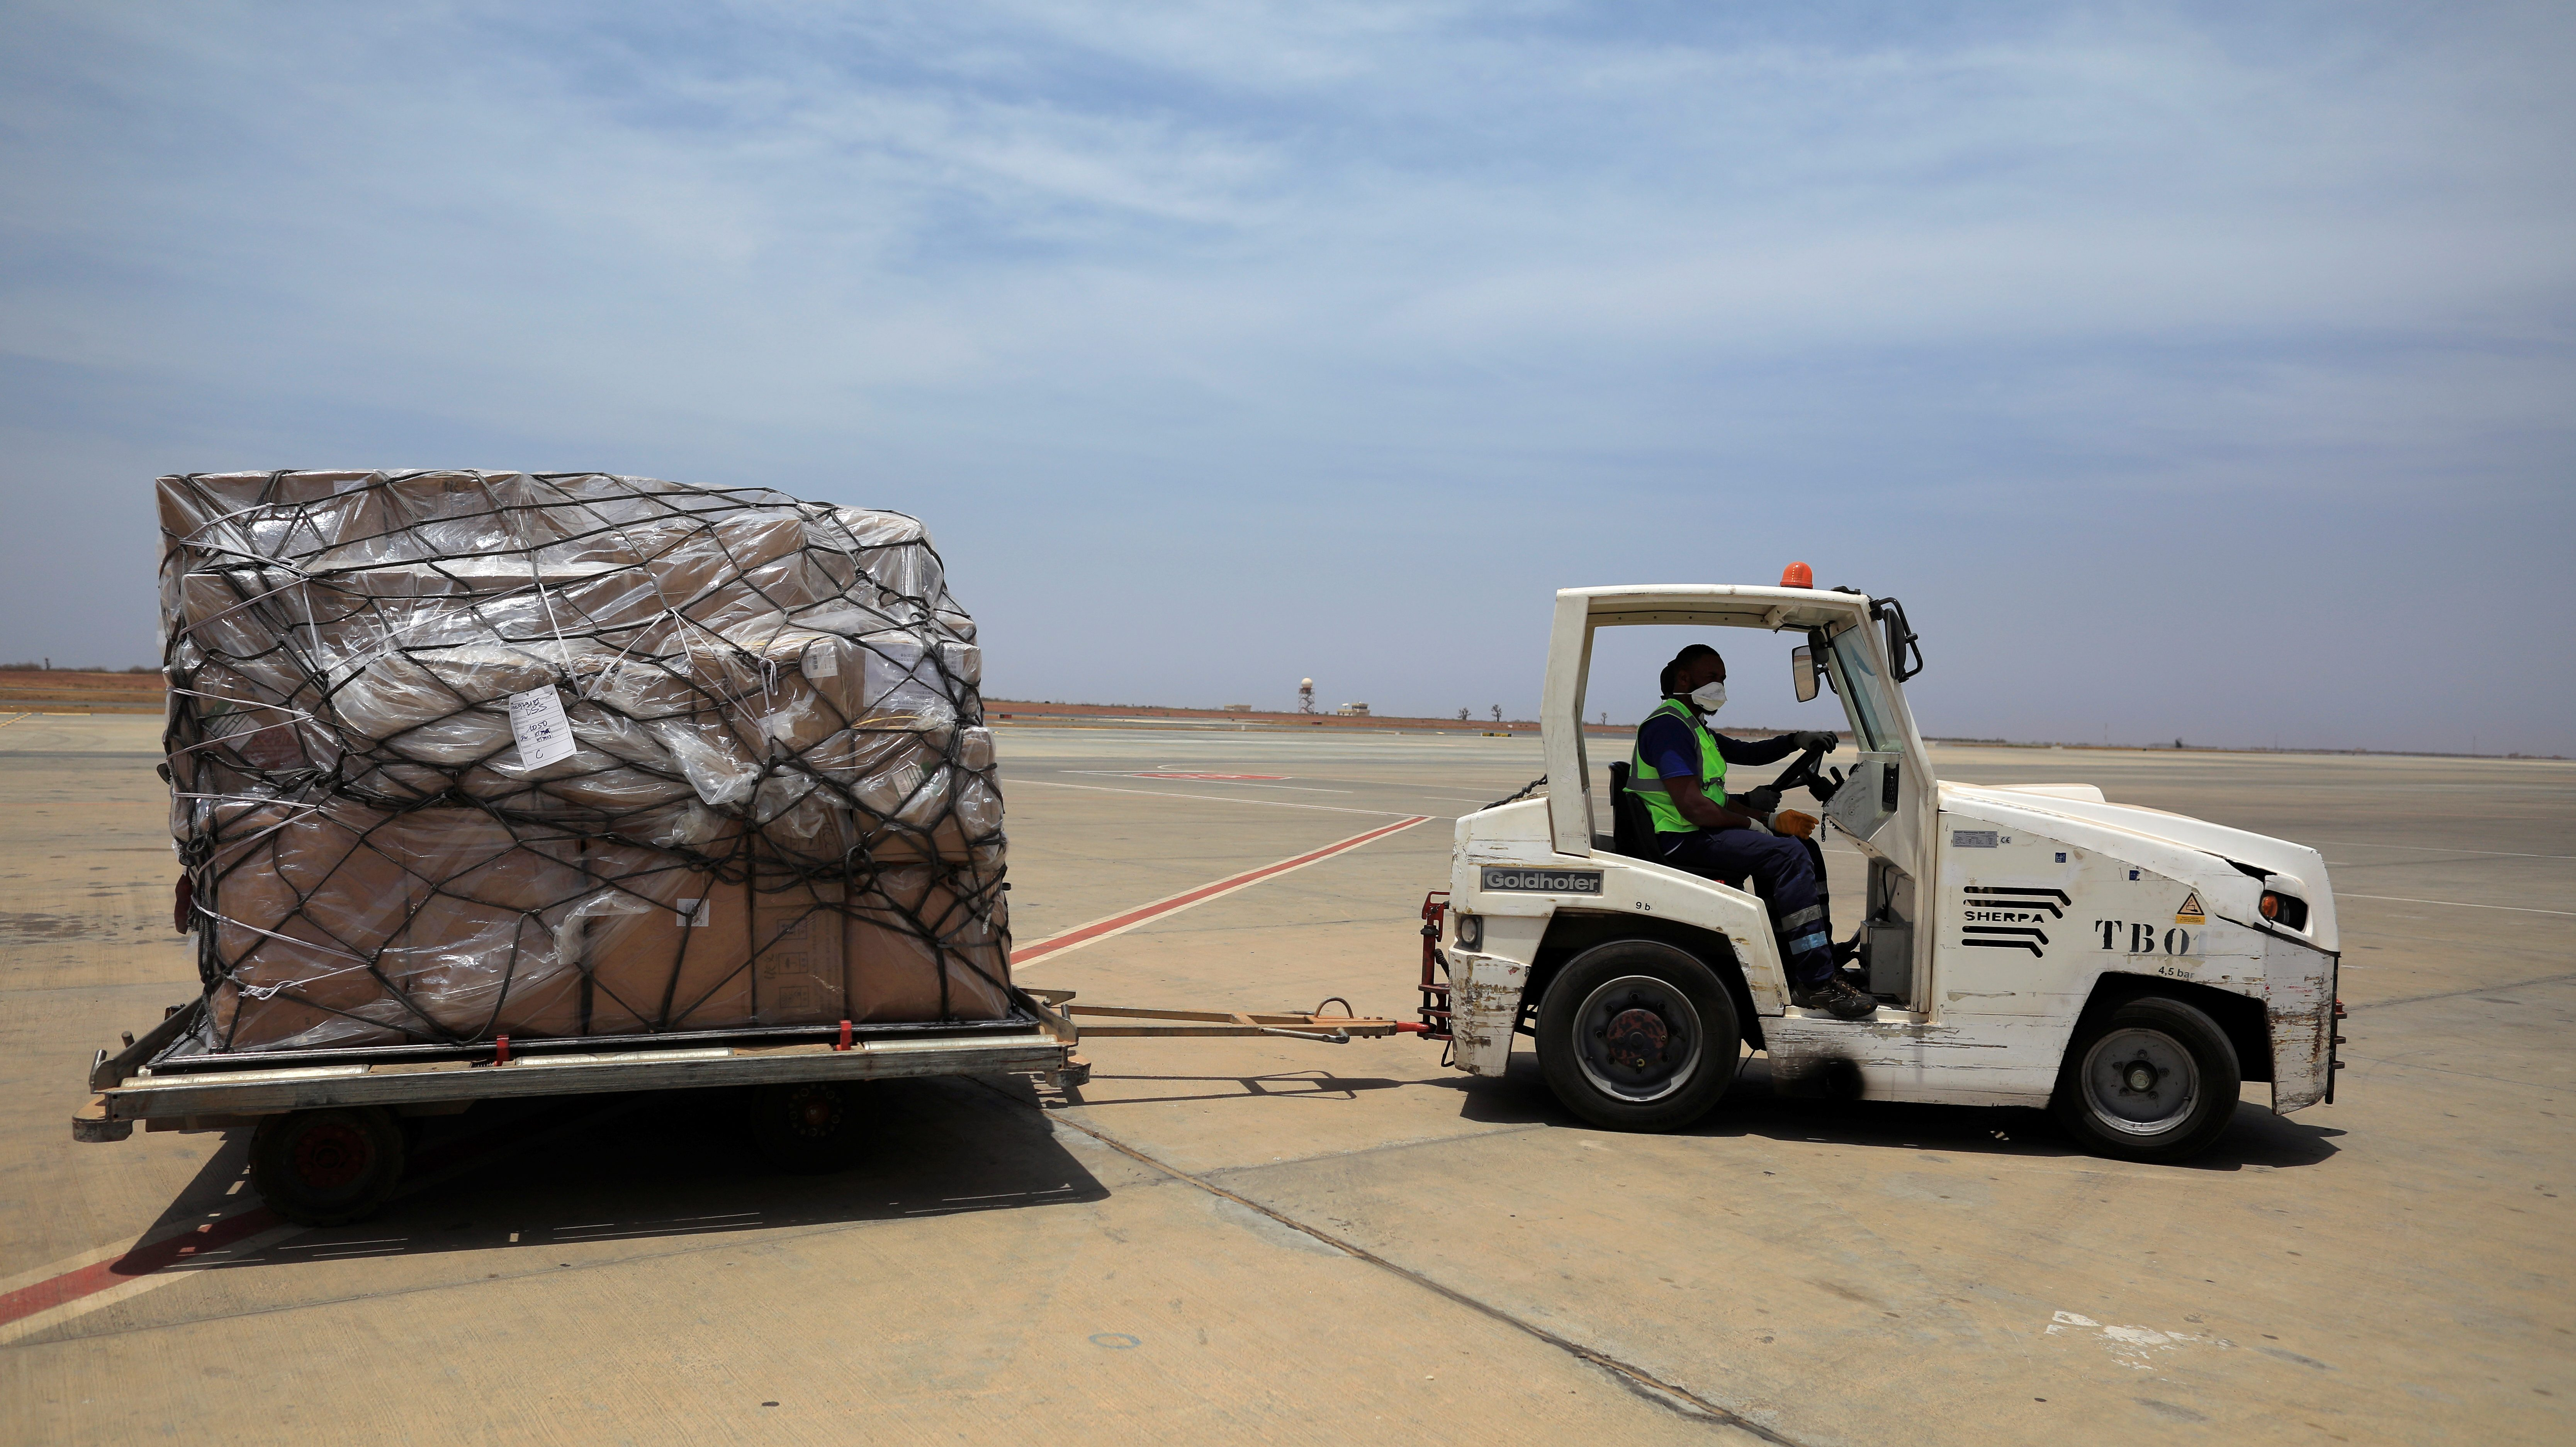 Airport workers drive a cart with shipment of medical supplies donated to help Africa for fight with the coronavirus disease (COVID-19) from Chinese billionaire Jack Ma and the Alibaba Foundation, after it arrived from Ethiopia at Blaise Diagne international airport in Thies, Senegal March 28, 2020.